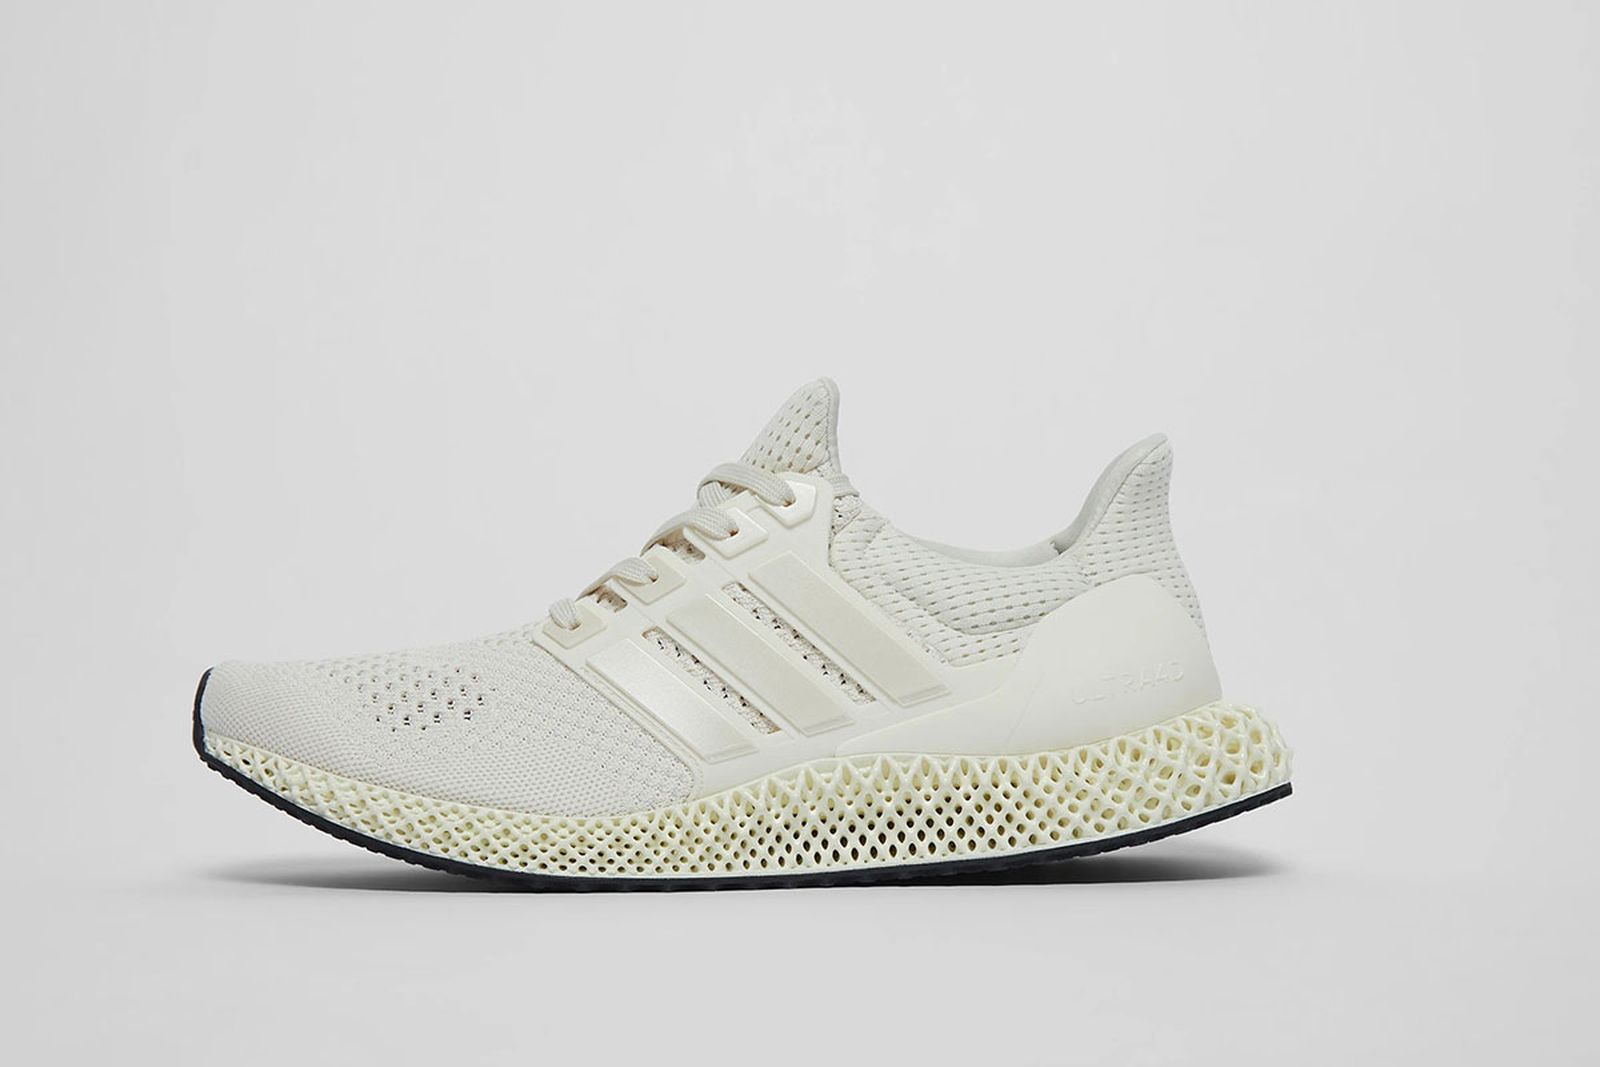 adidas-ultra-4d-triple-black-white-release-date-price-04